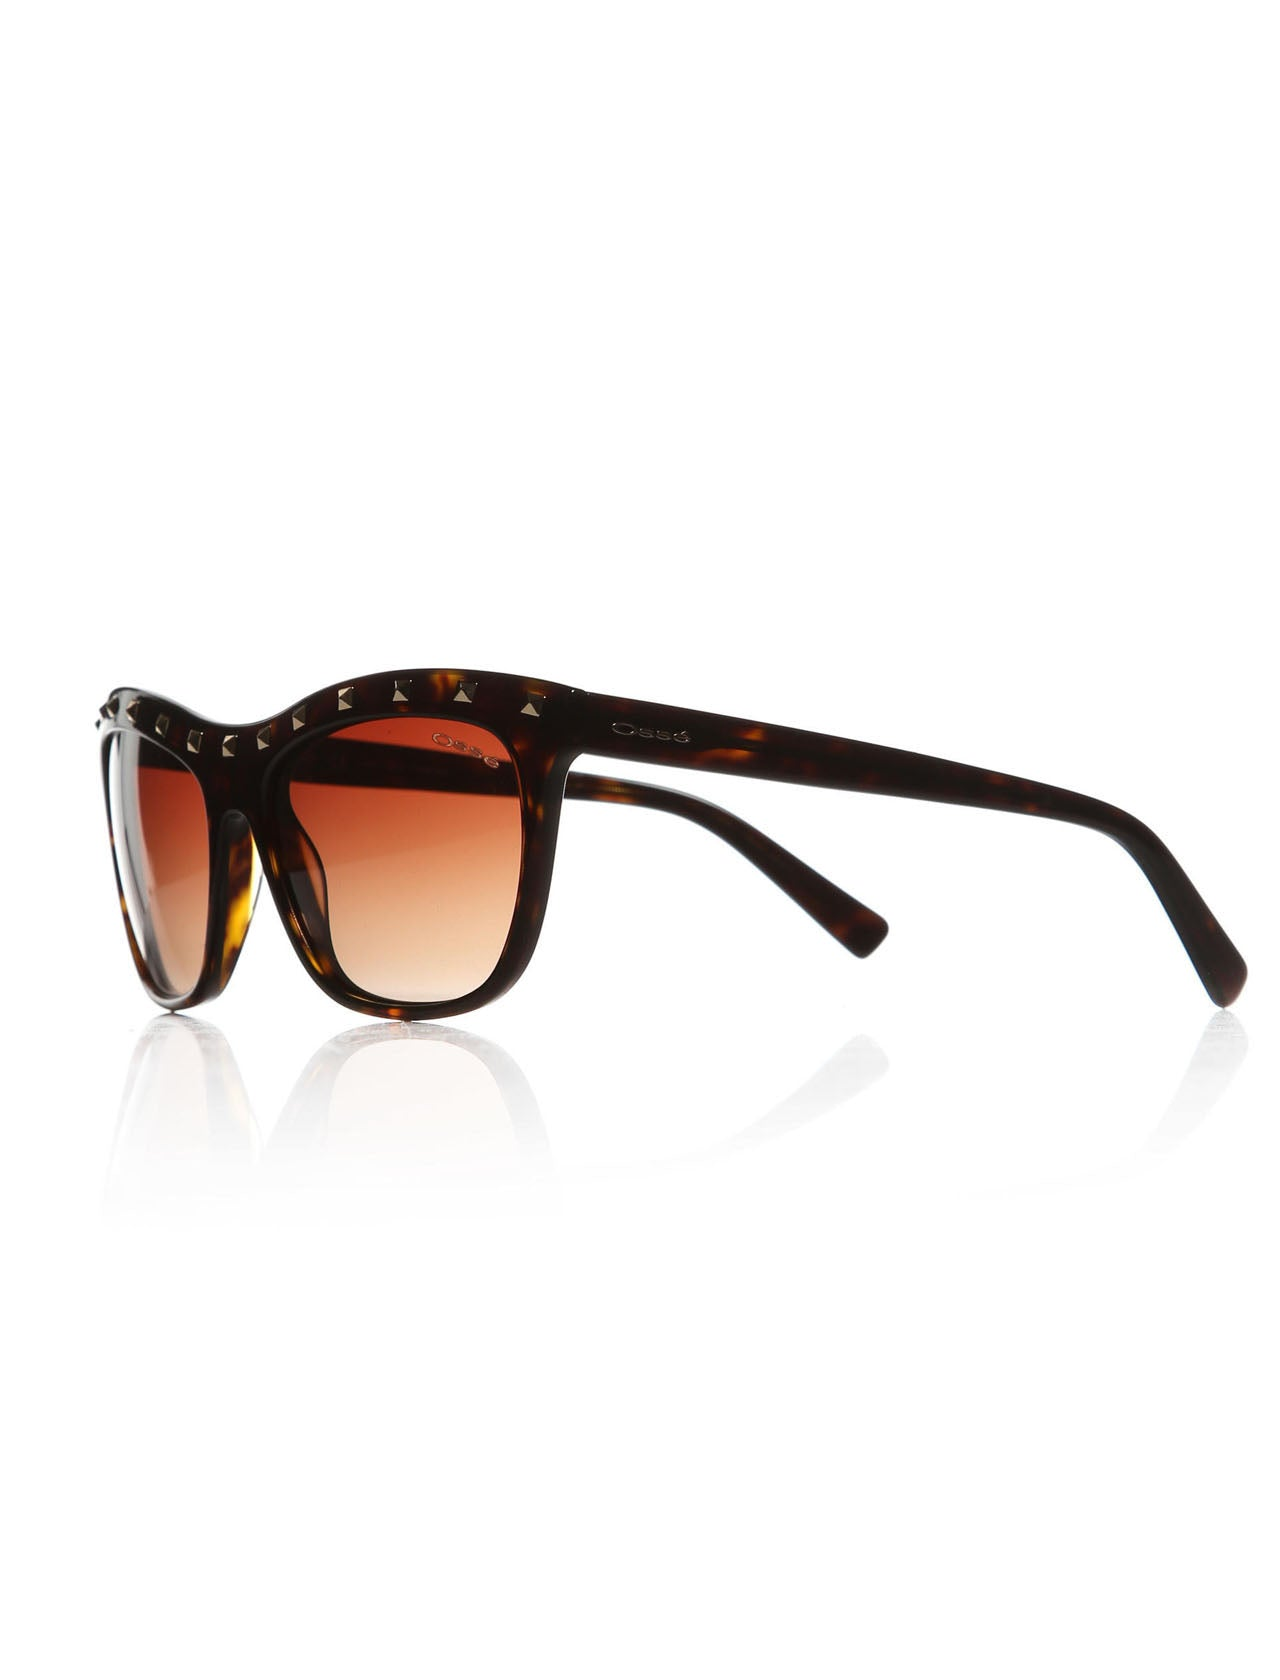 Women's Studded Plastic Frame Sunglasses